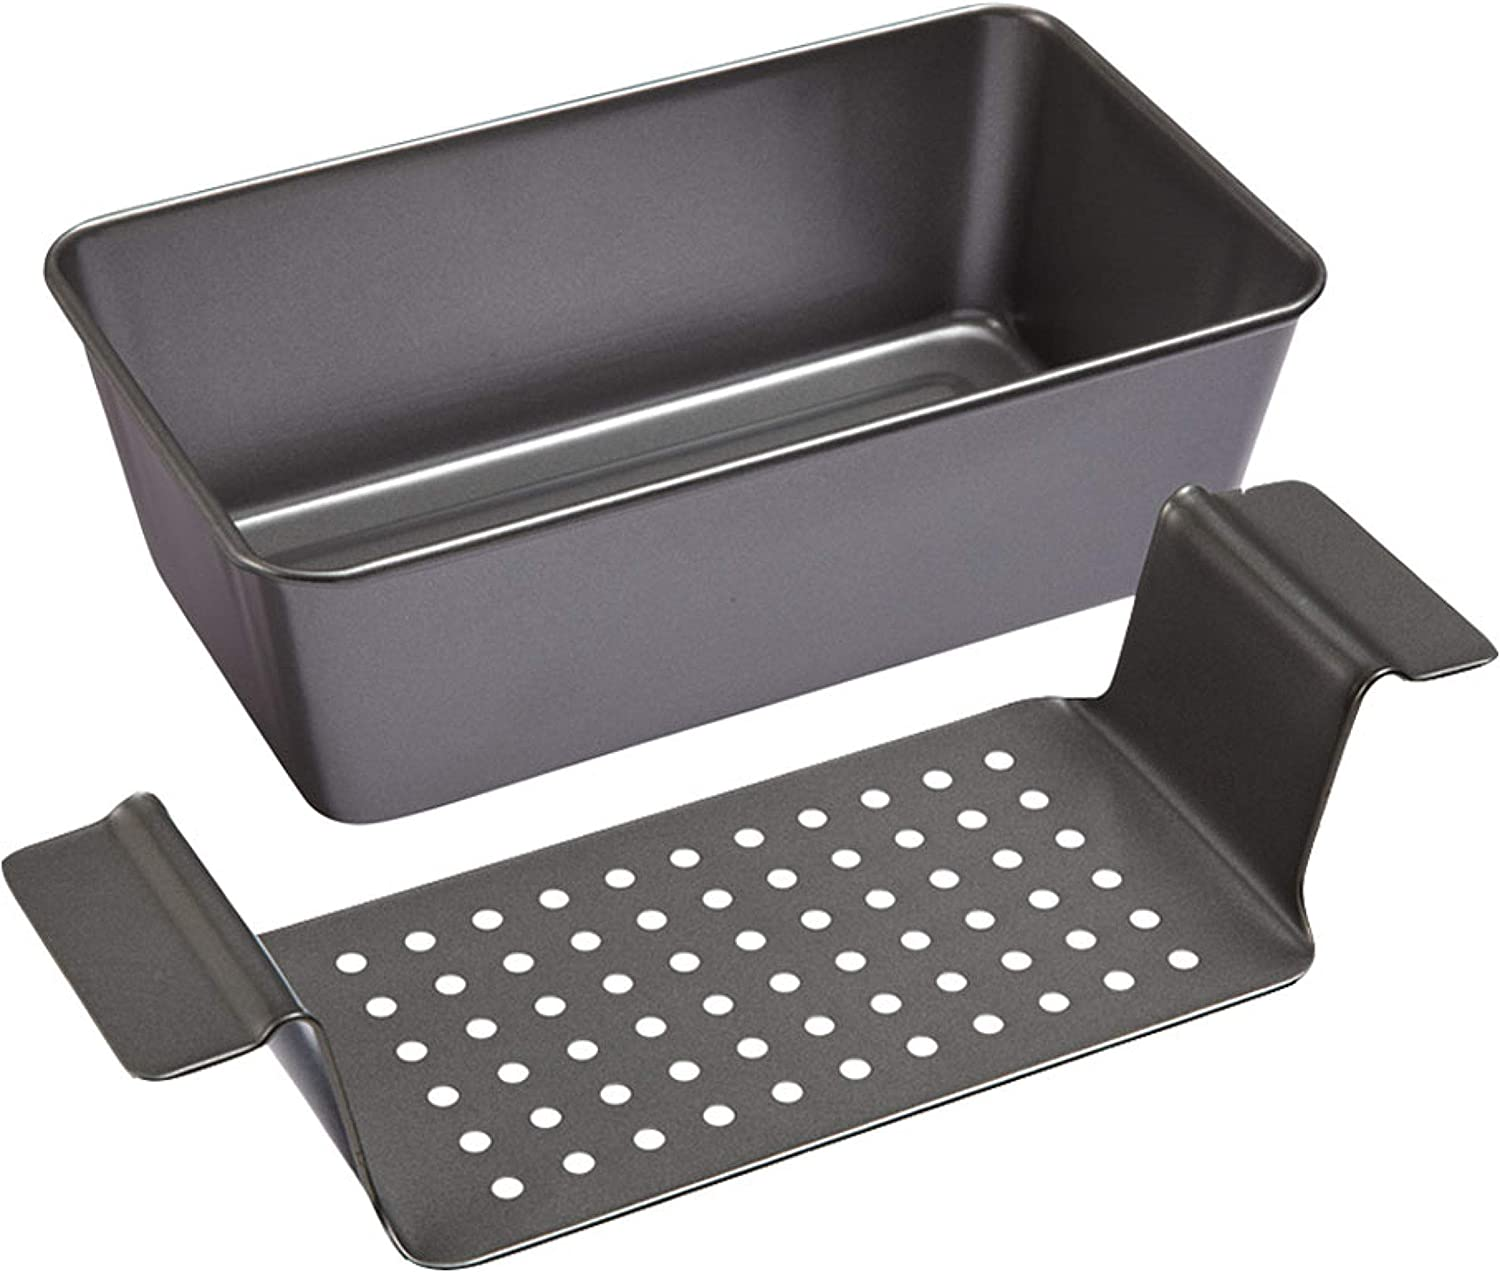 Chicago Metallic Professional Healthy Meatloaf Pan, 2-Piece Set, Gray